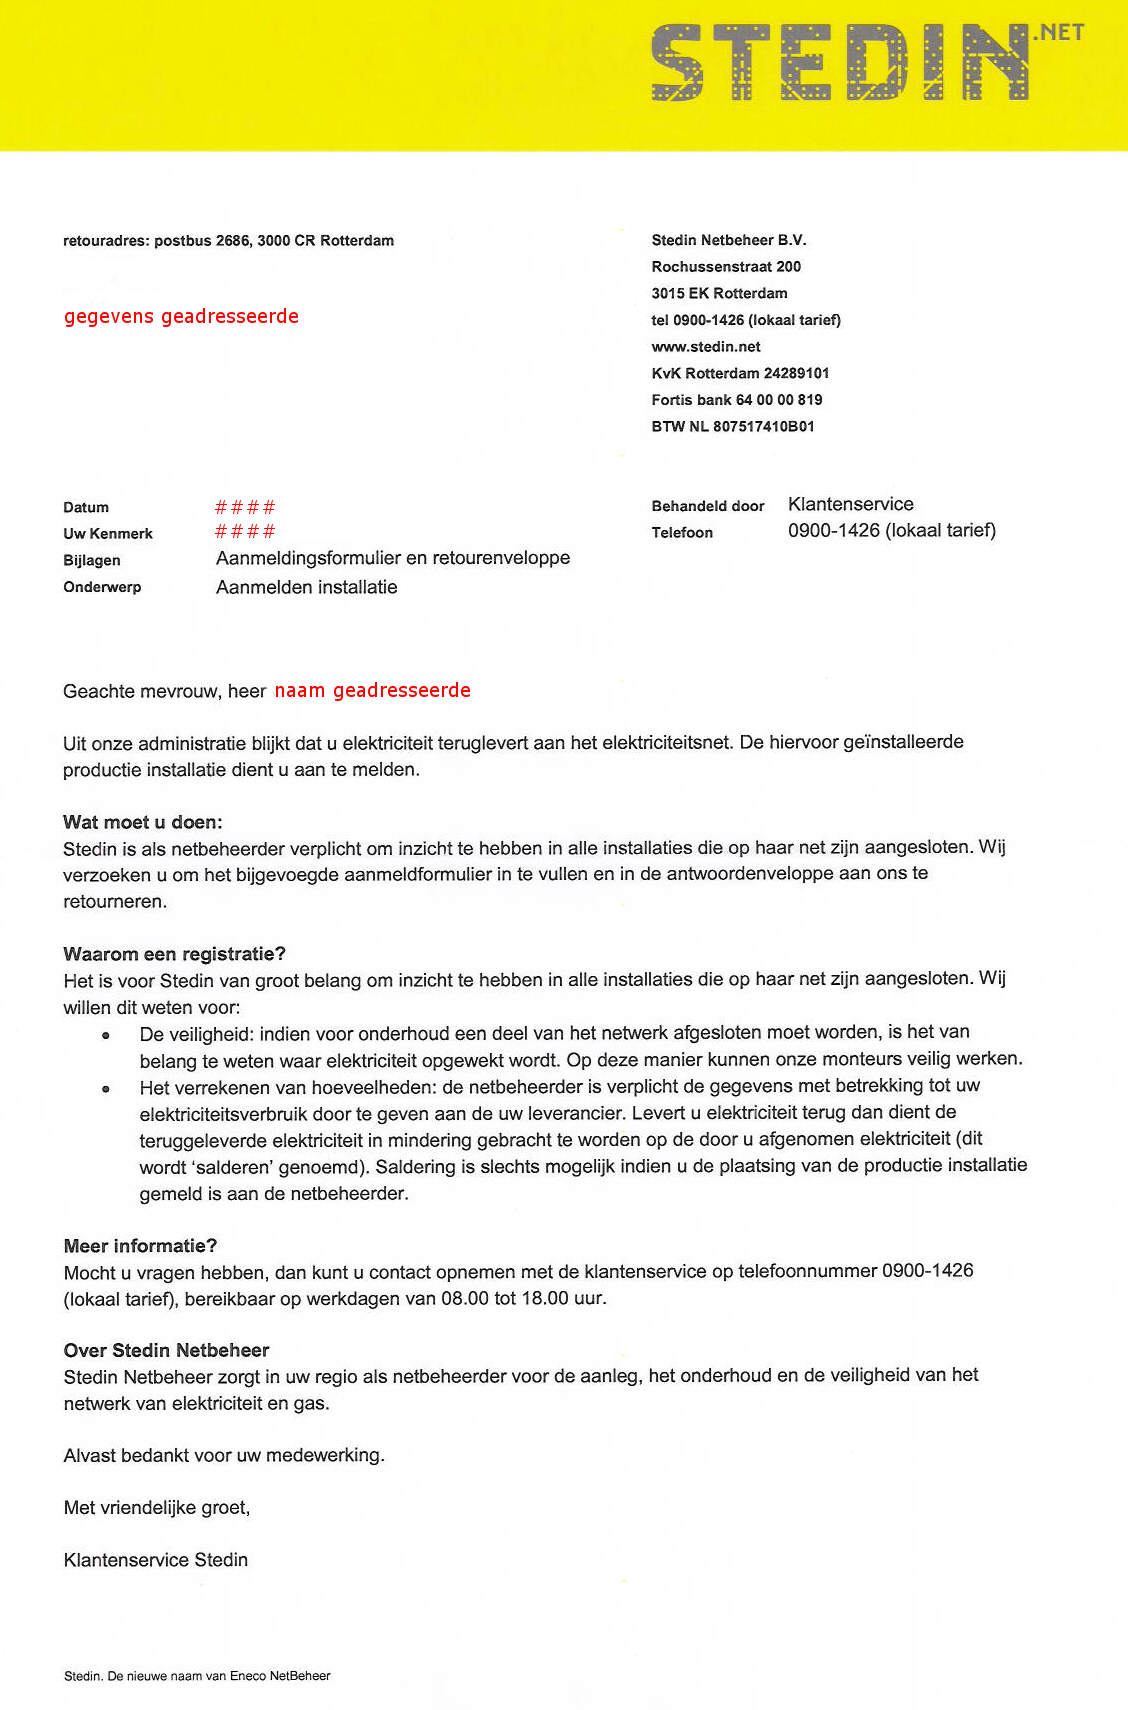 formele brief duits